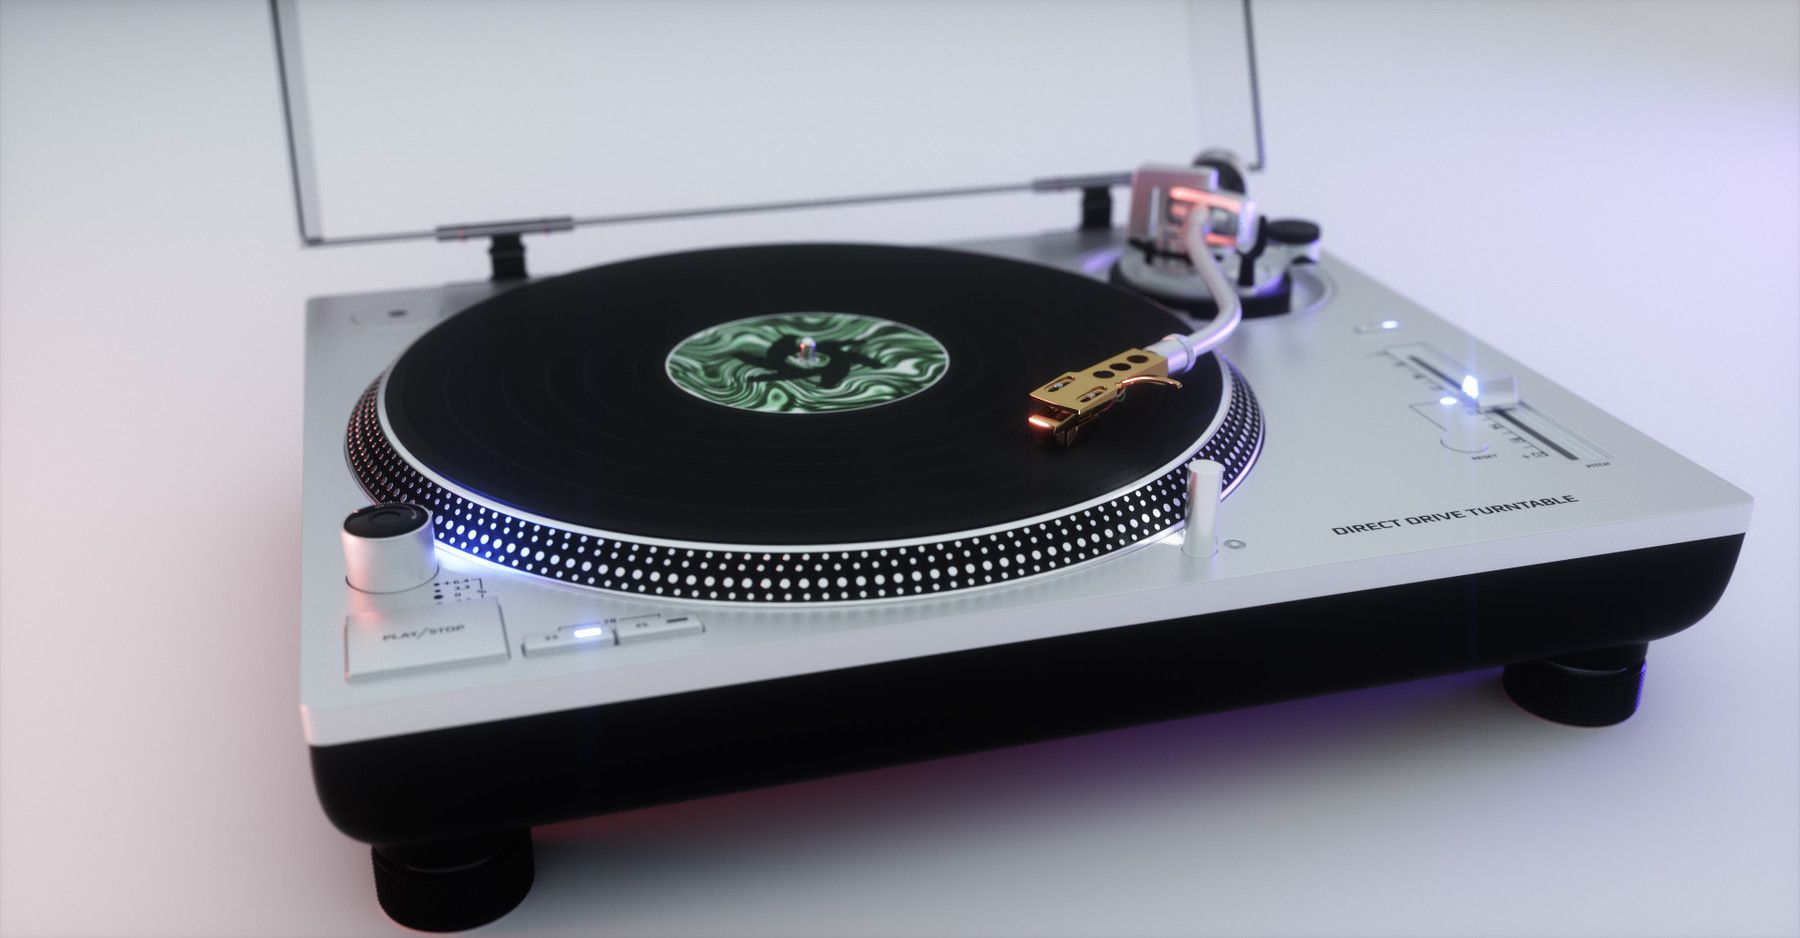 Technics Turntable 3d Model Vinyl Record Player Sl 1200gr Hard Surface High Poly Modeling And Product Rend Technics Turntables Vinyl Record Player Turntable